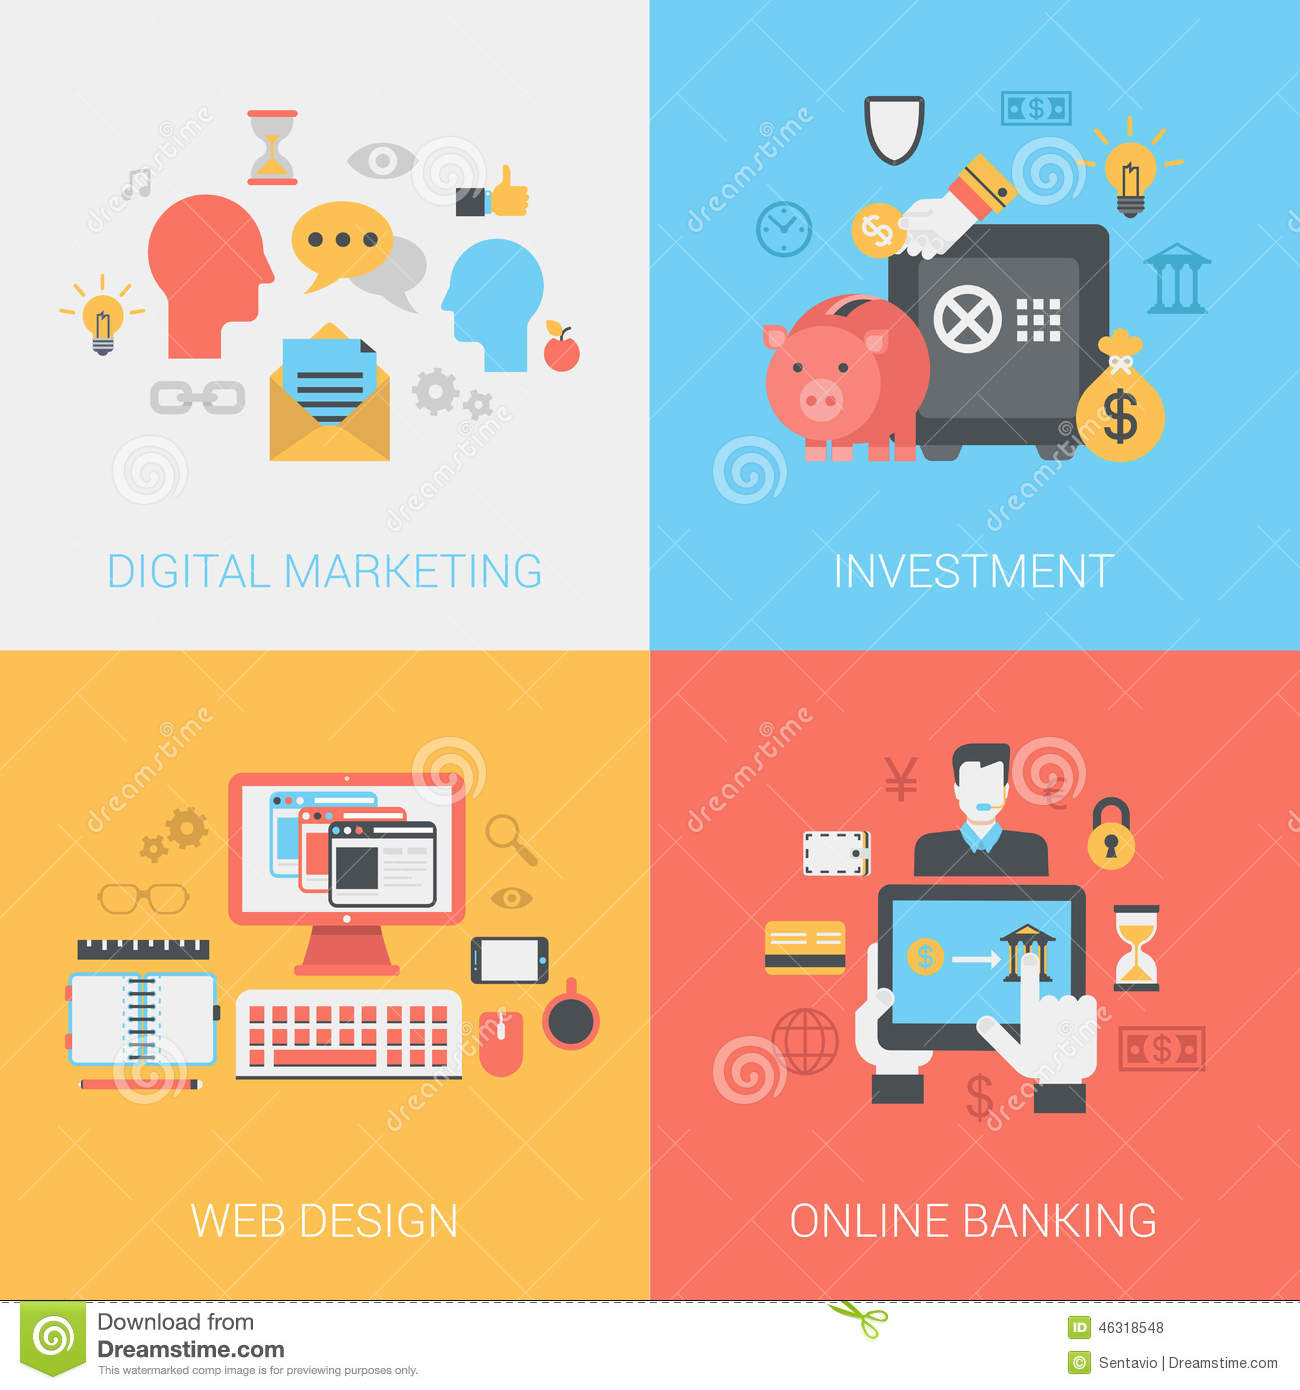 Digital marketing investments web design online banking for Blueprint online